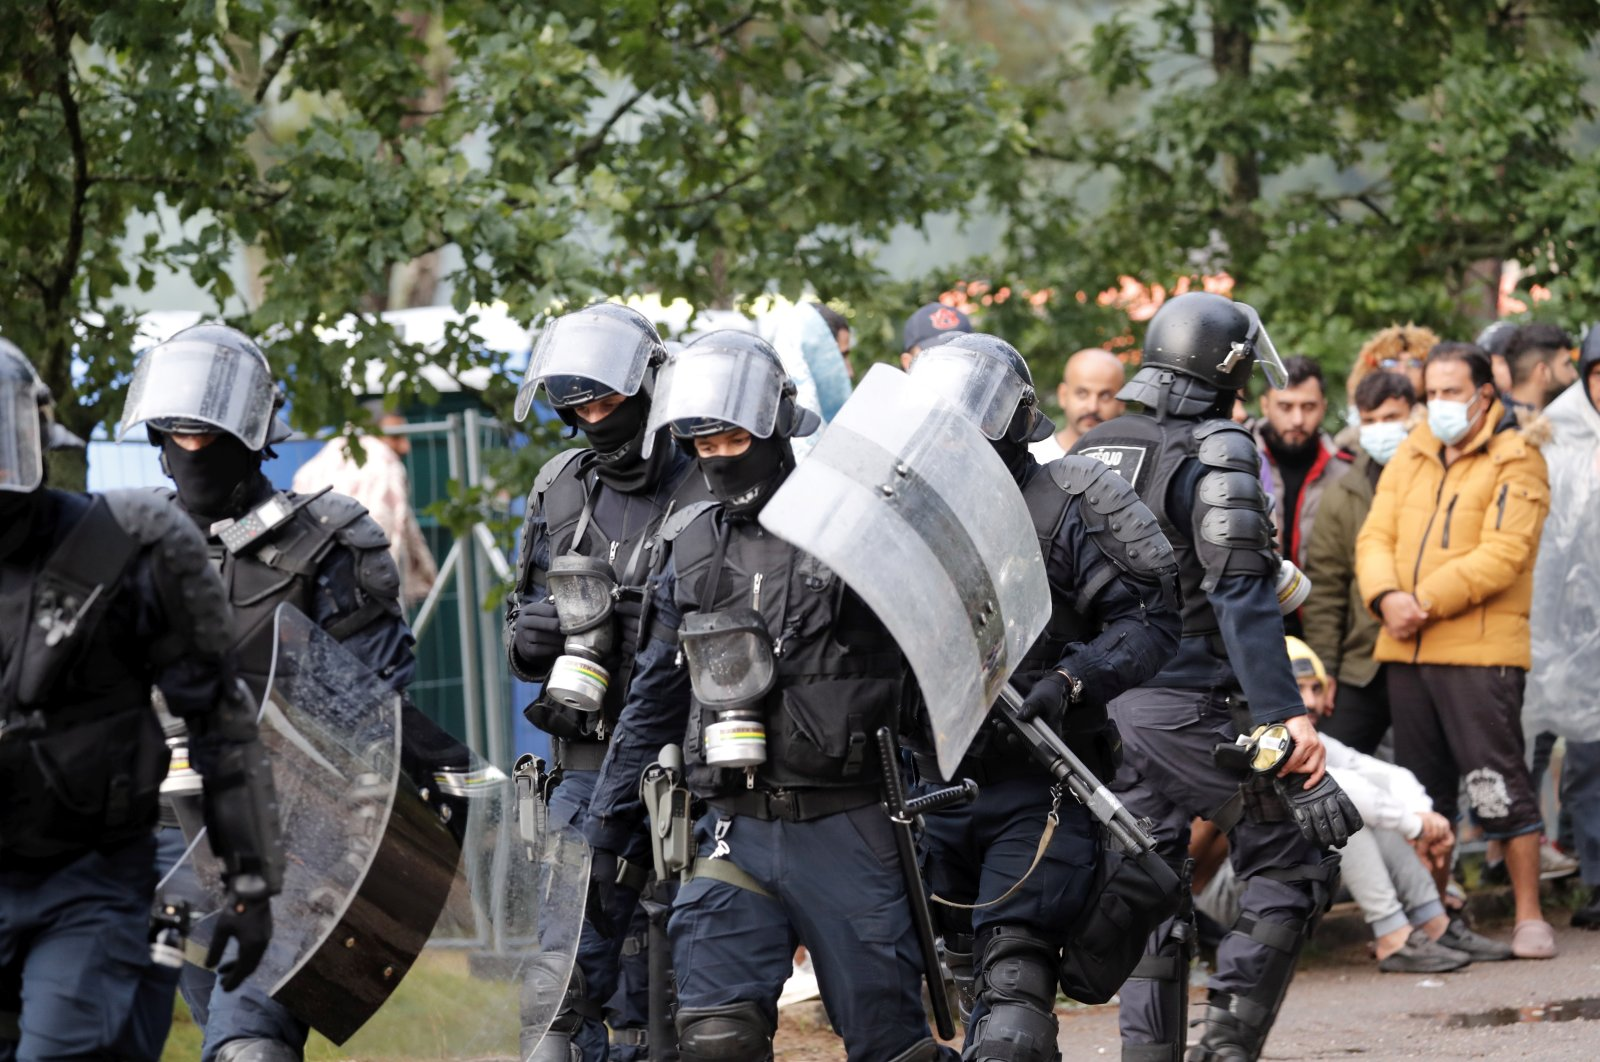 Riot police officers and migrants are seen at the tent camp in the Rudninkai training ground, Lithuania, Aug. 2, 2021. (EPA Photo)